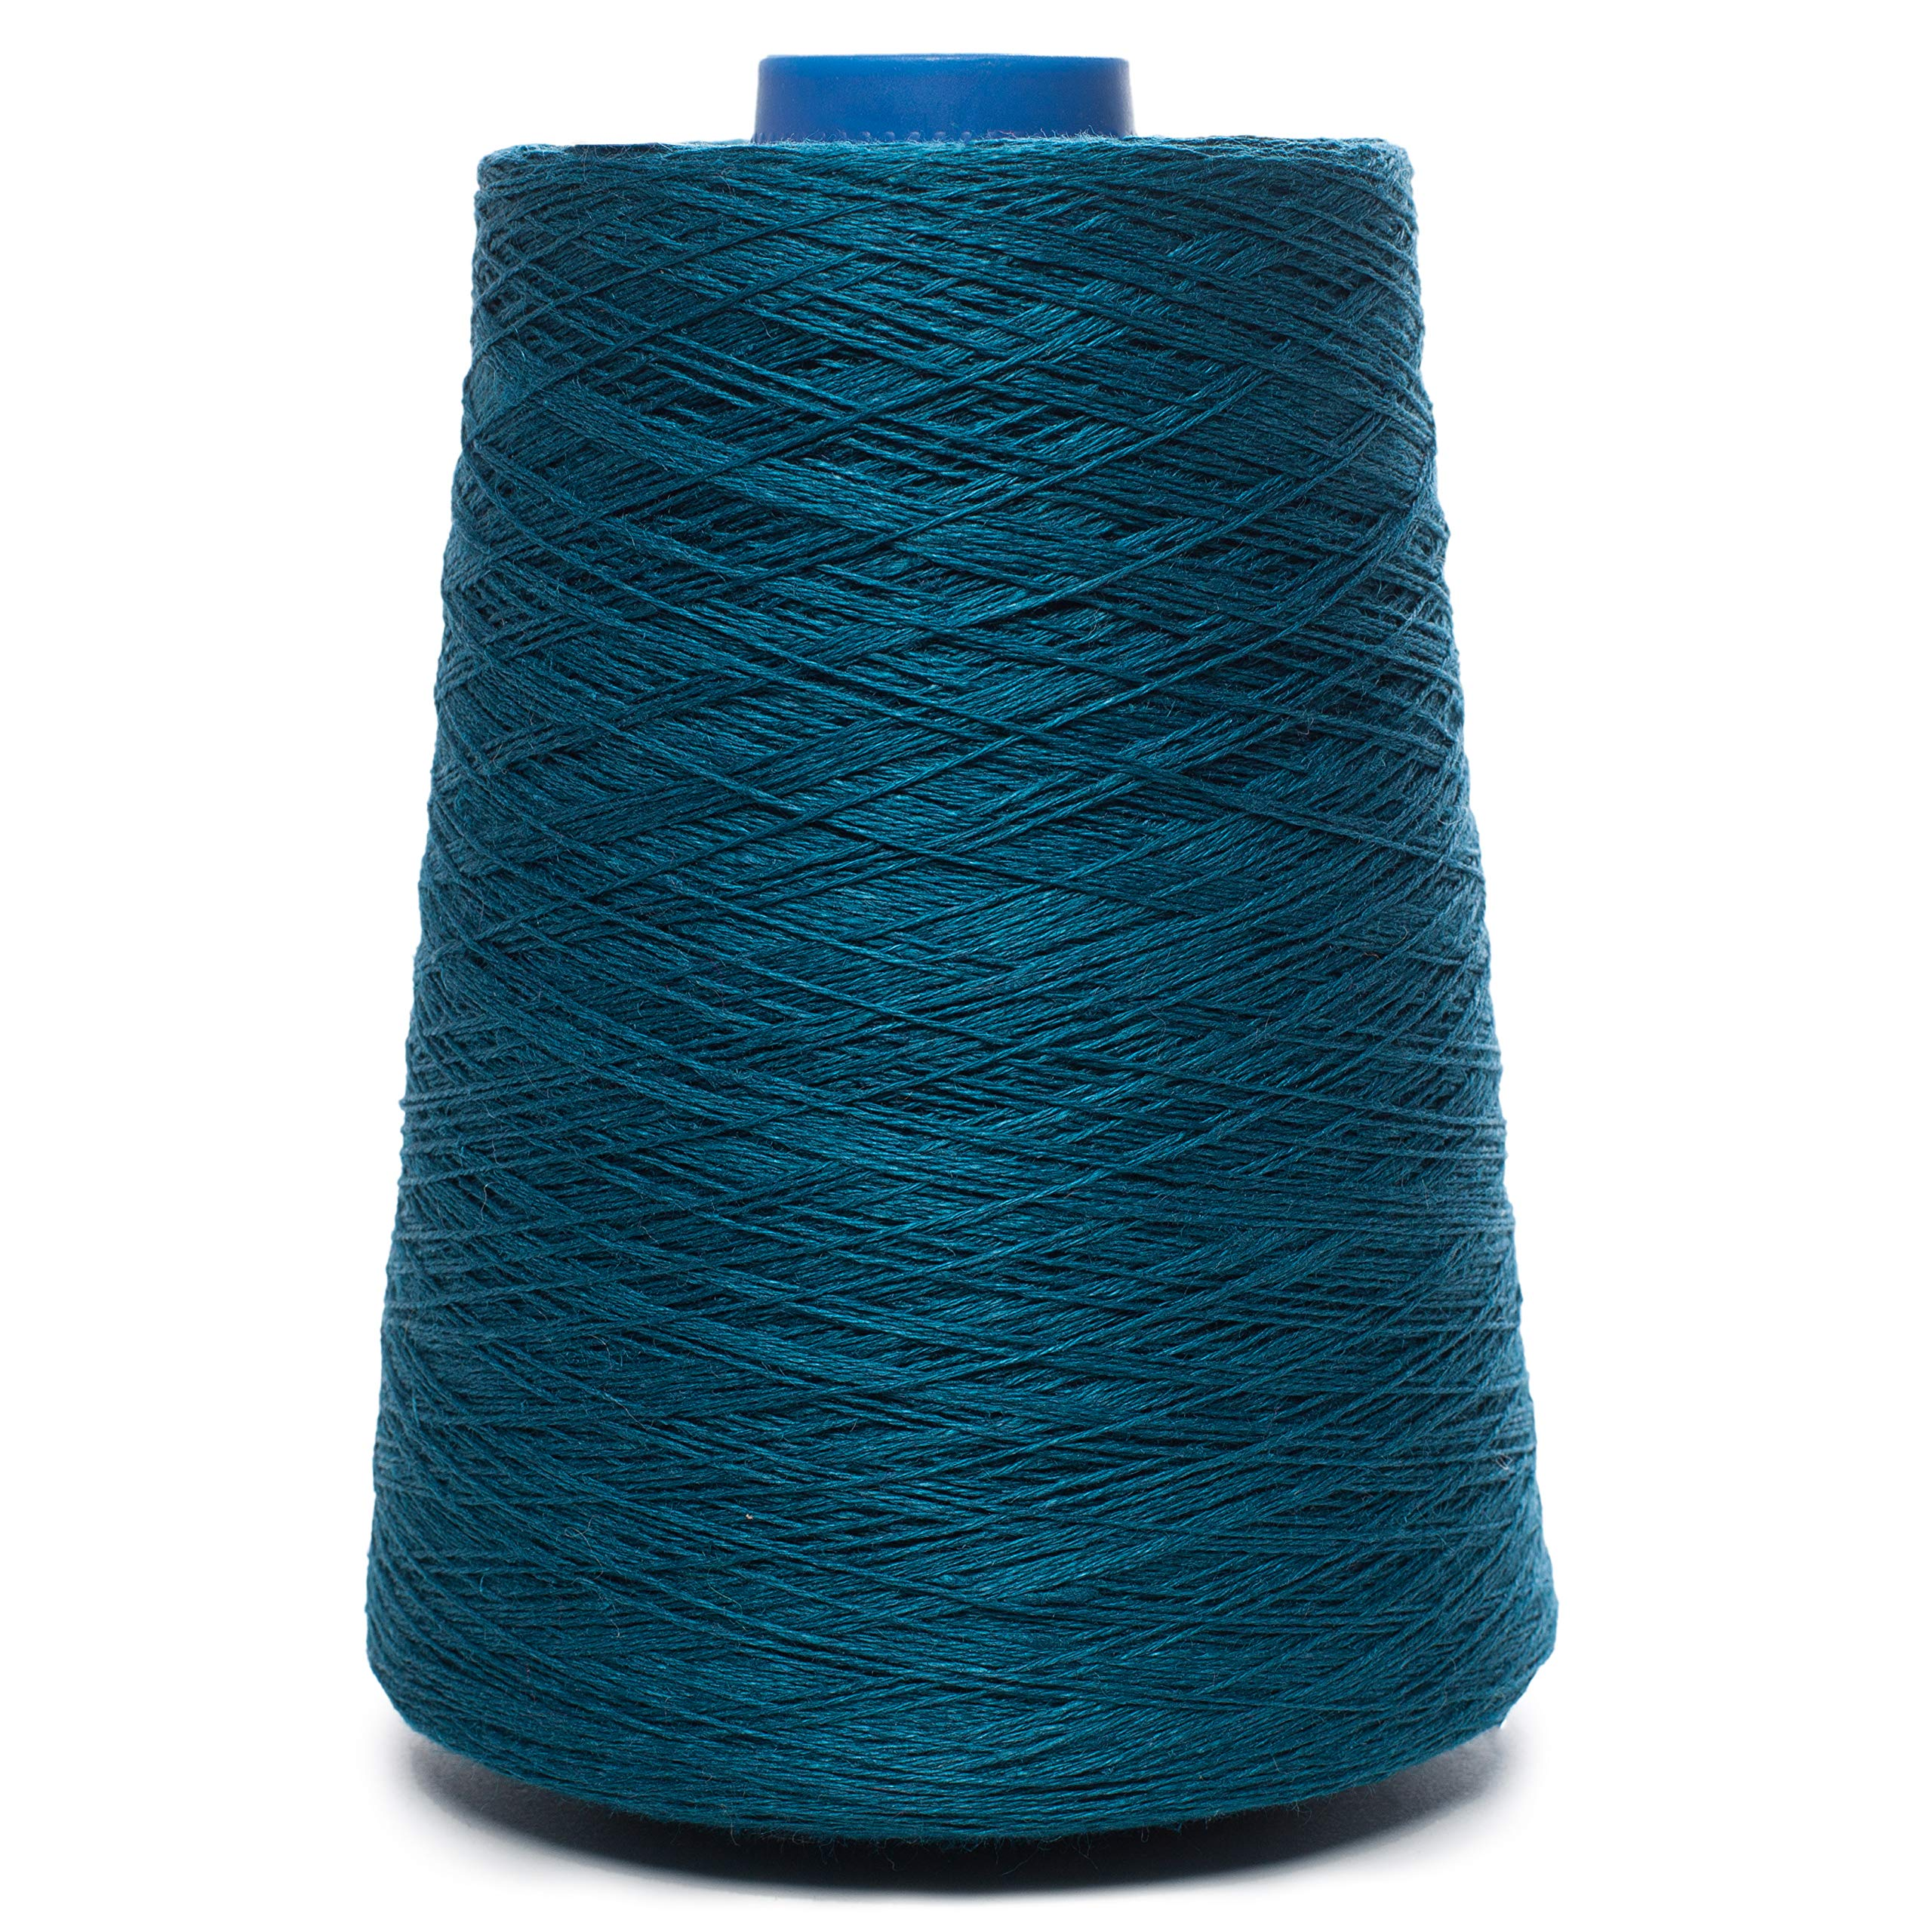 Linen Yarn Cone - 100% Flax Linen - One Pound Yarn - 1 LBS - Turquoise Blue Yarn - 3 PLY - Sewing Weaving Crochet Embroidering - 3.000 Yards - Flax Fiber